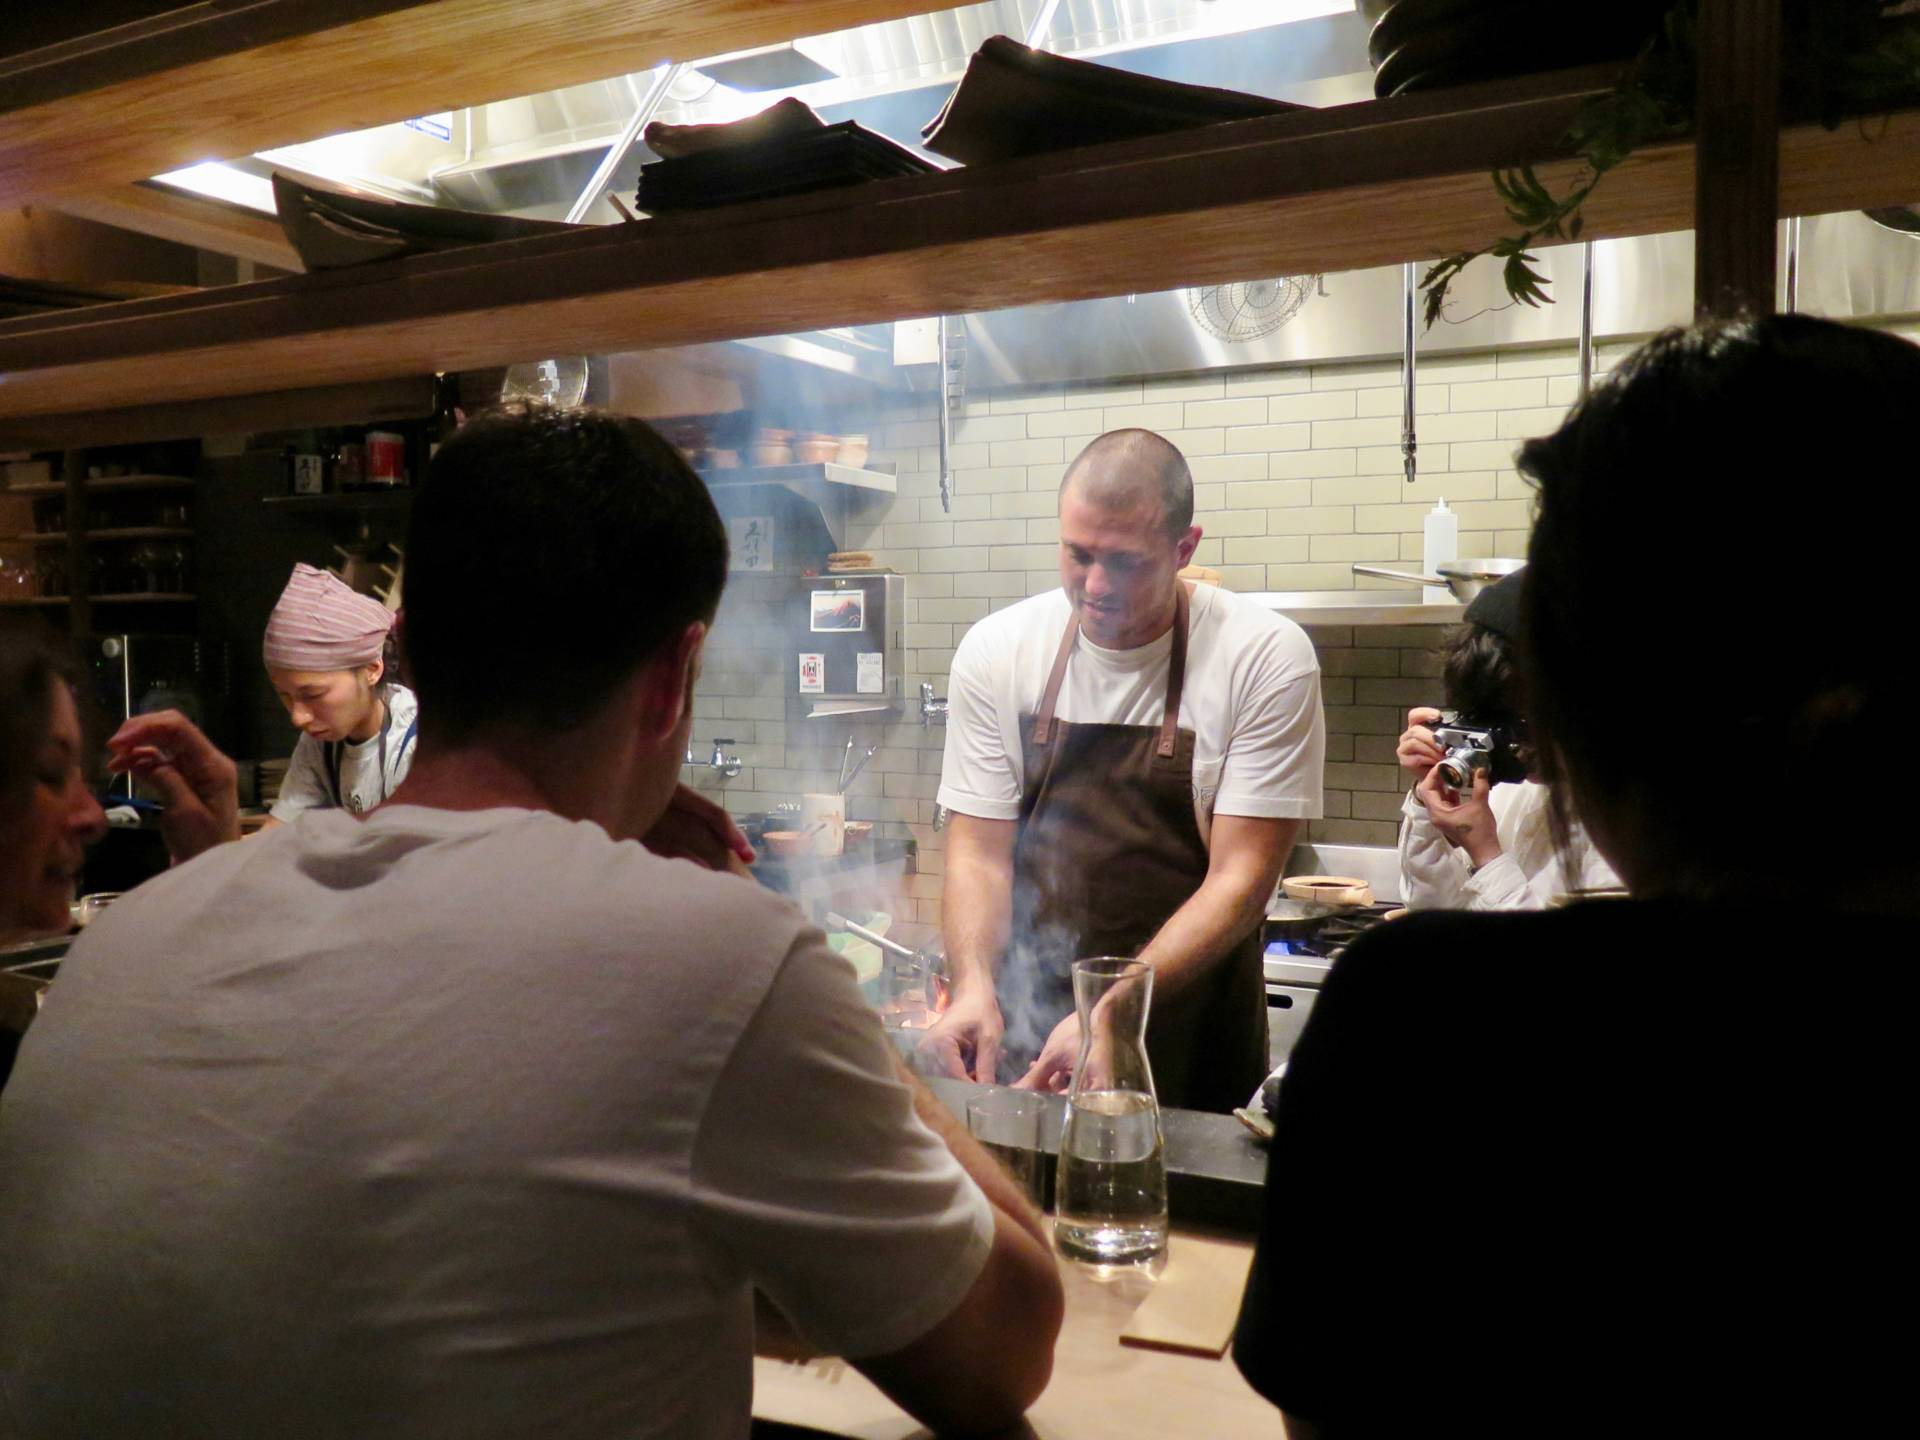 Izakaya Rintaro hosts guest chefs from around the world, like Matt Abergel of Hong Kong's Yardbird.